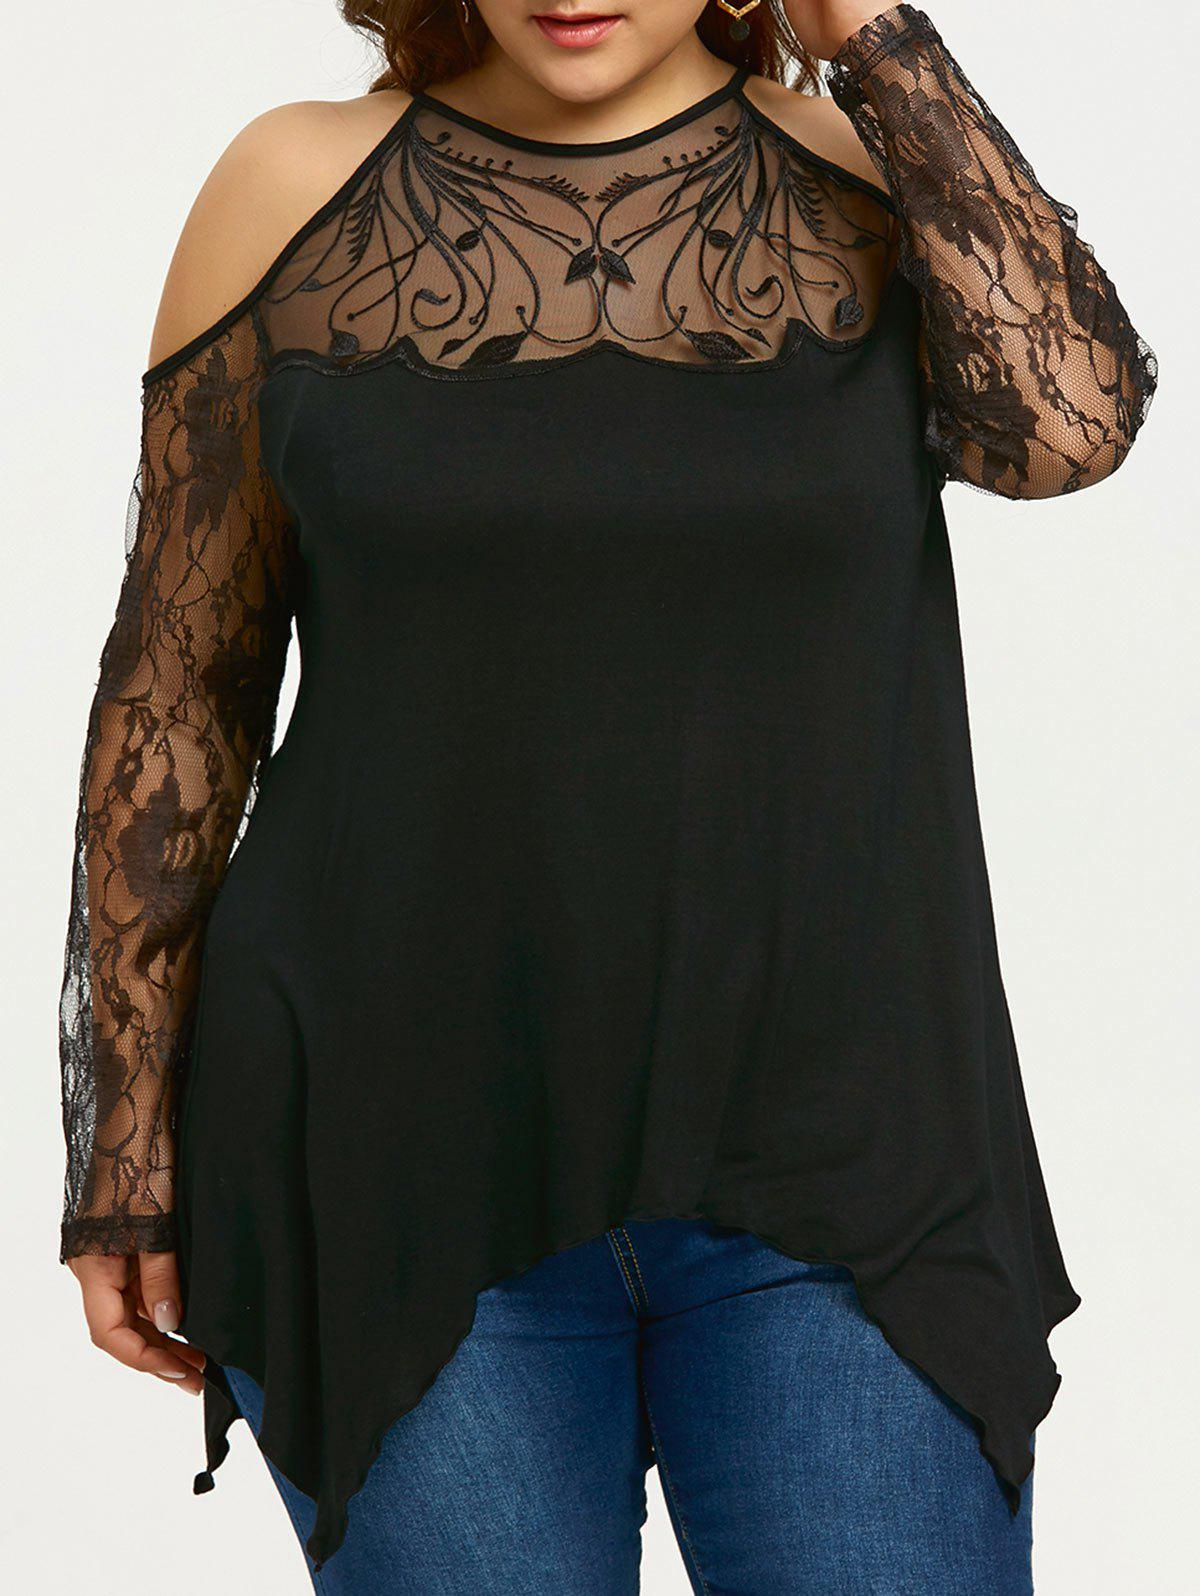 Plus Size Sheer Cold Shoulder Top - BLACK XL